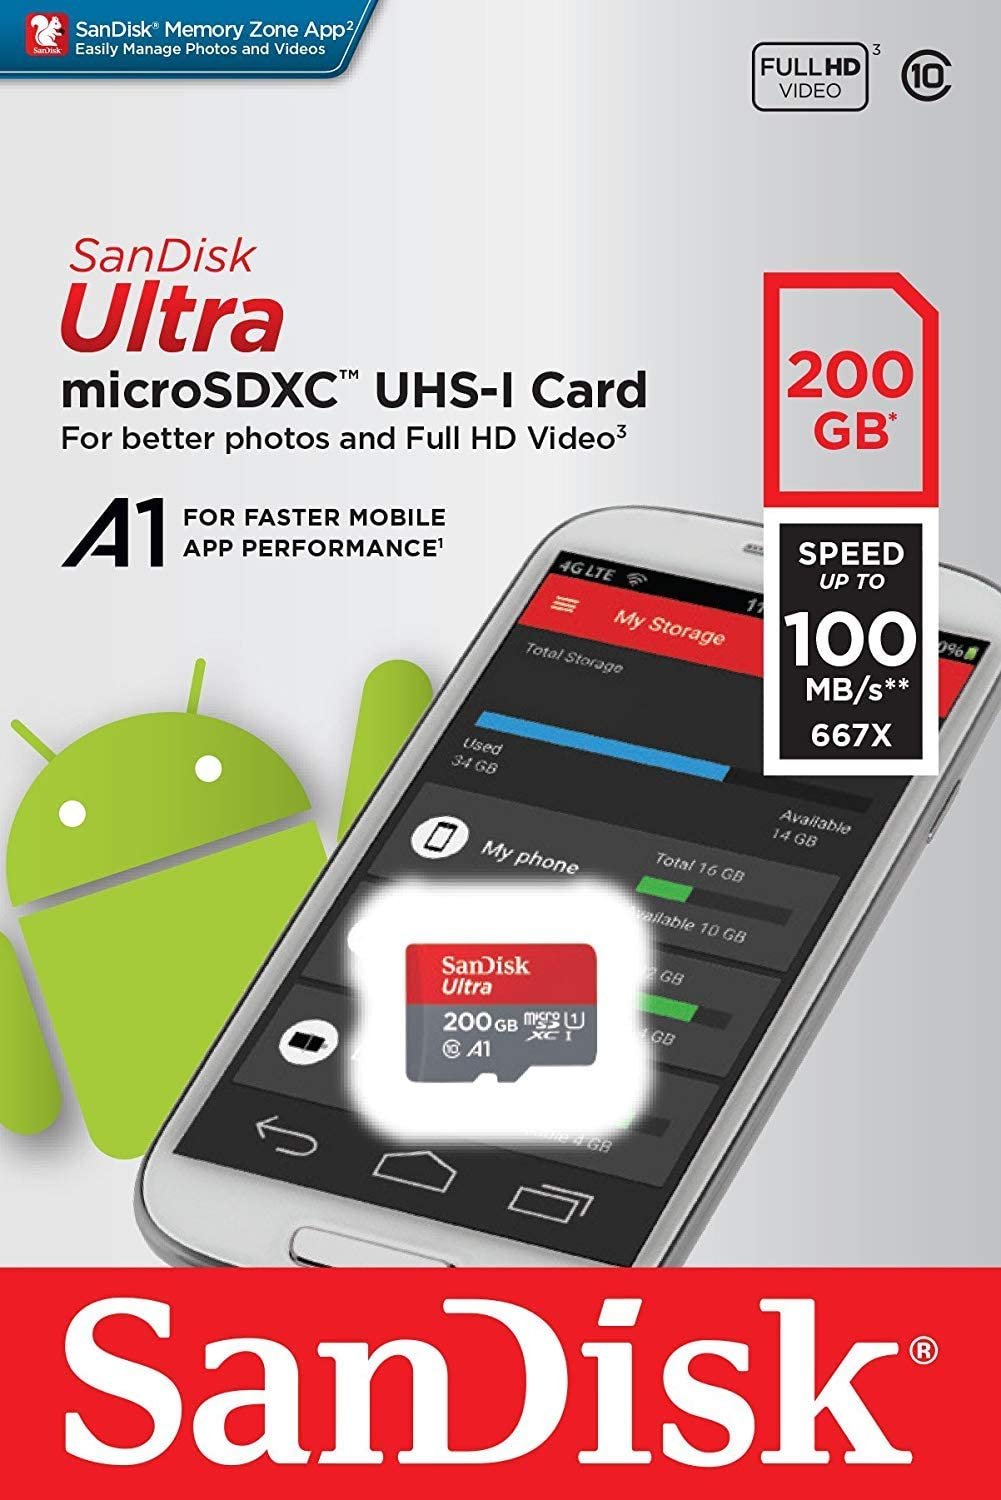 SanDisk Ultra 200GB MicroSDXC Verified for LG Optimus L1 II Dual by SanFlash 100MBs A1 U1 C10 Works with SanDisk